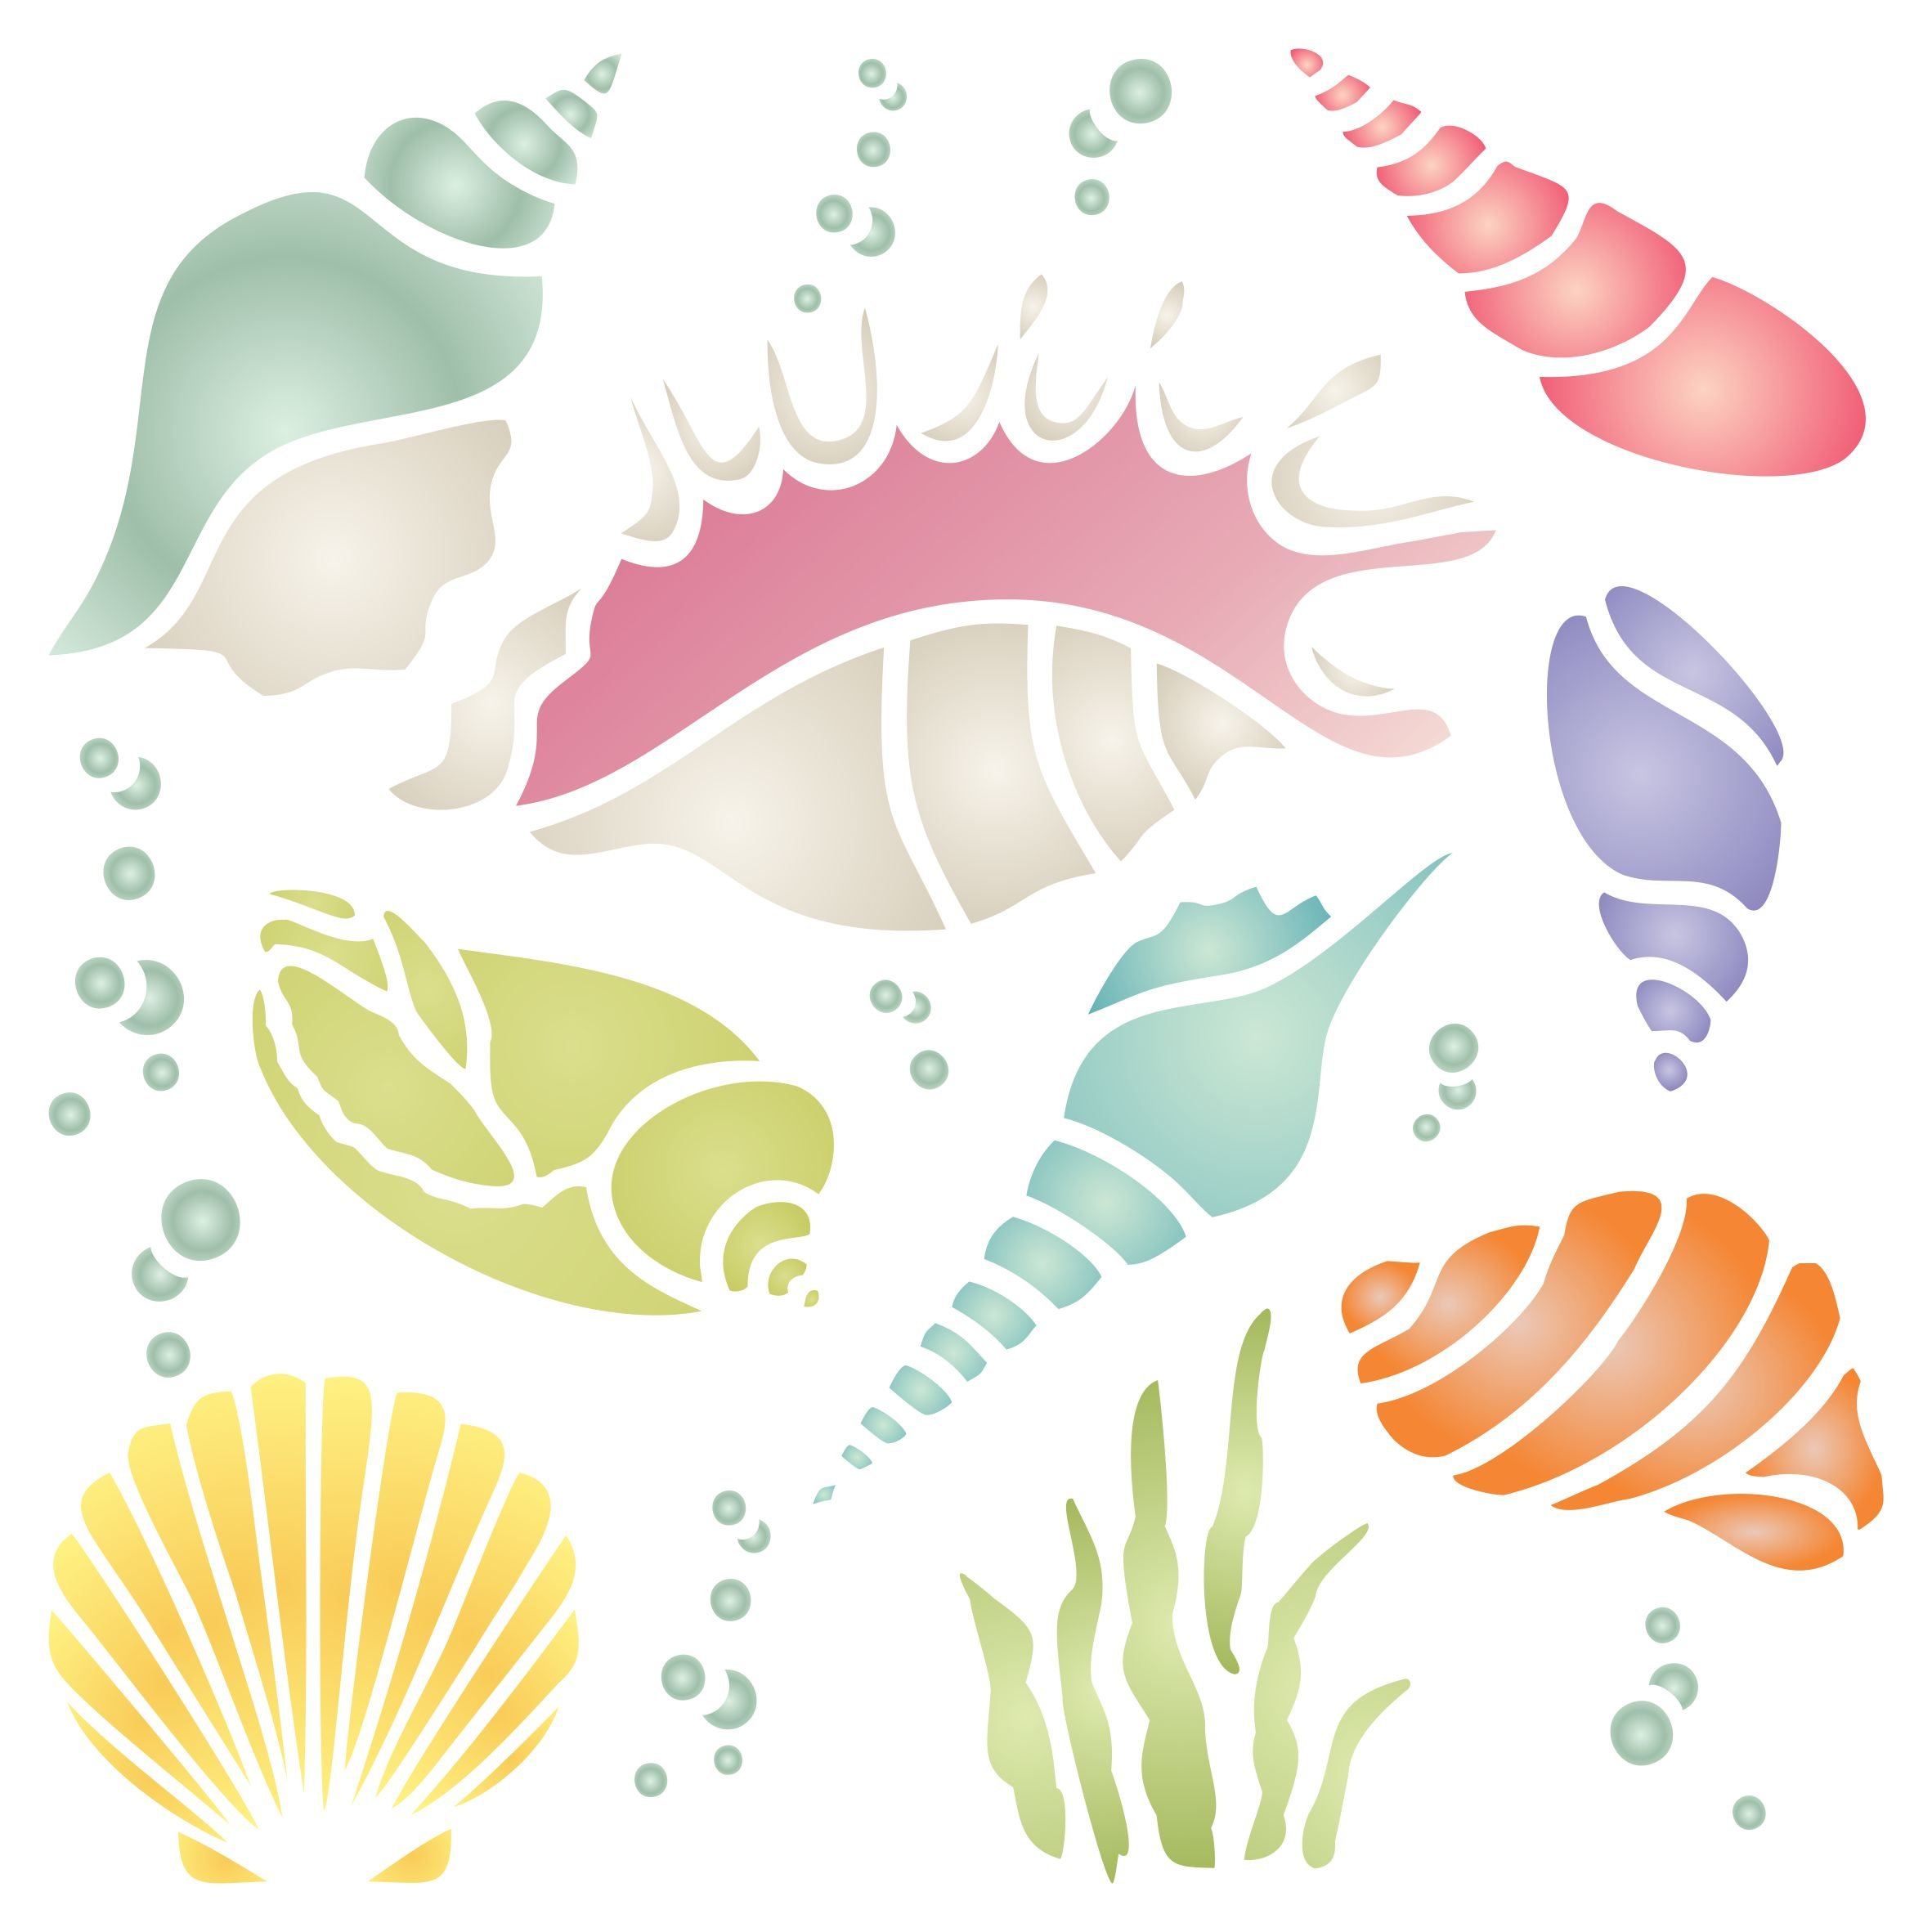 Shells Stencil - 8.5 x 8.5 inch (L) - Reusable Sea Ocean Nautical Seashore Reef Wall Stencil Template - Use on Paper Projects Scrapbook Journal Walls Floors Fabric Furniture Glass Wood etc.